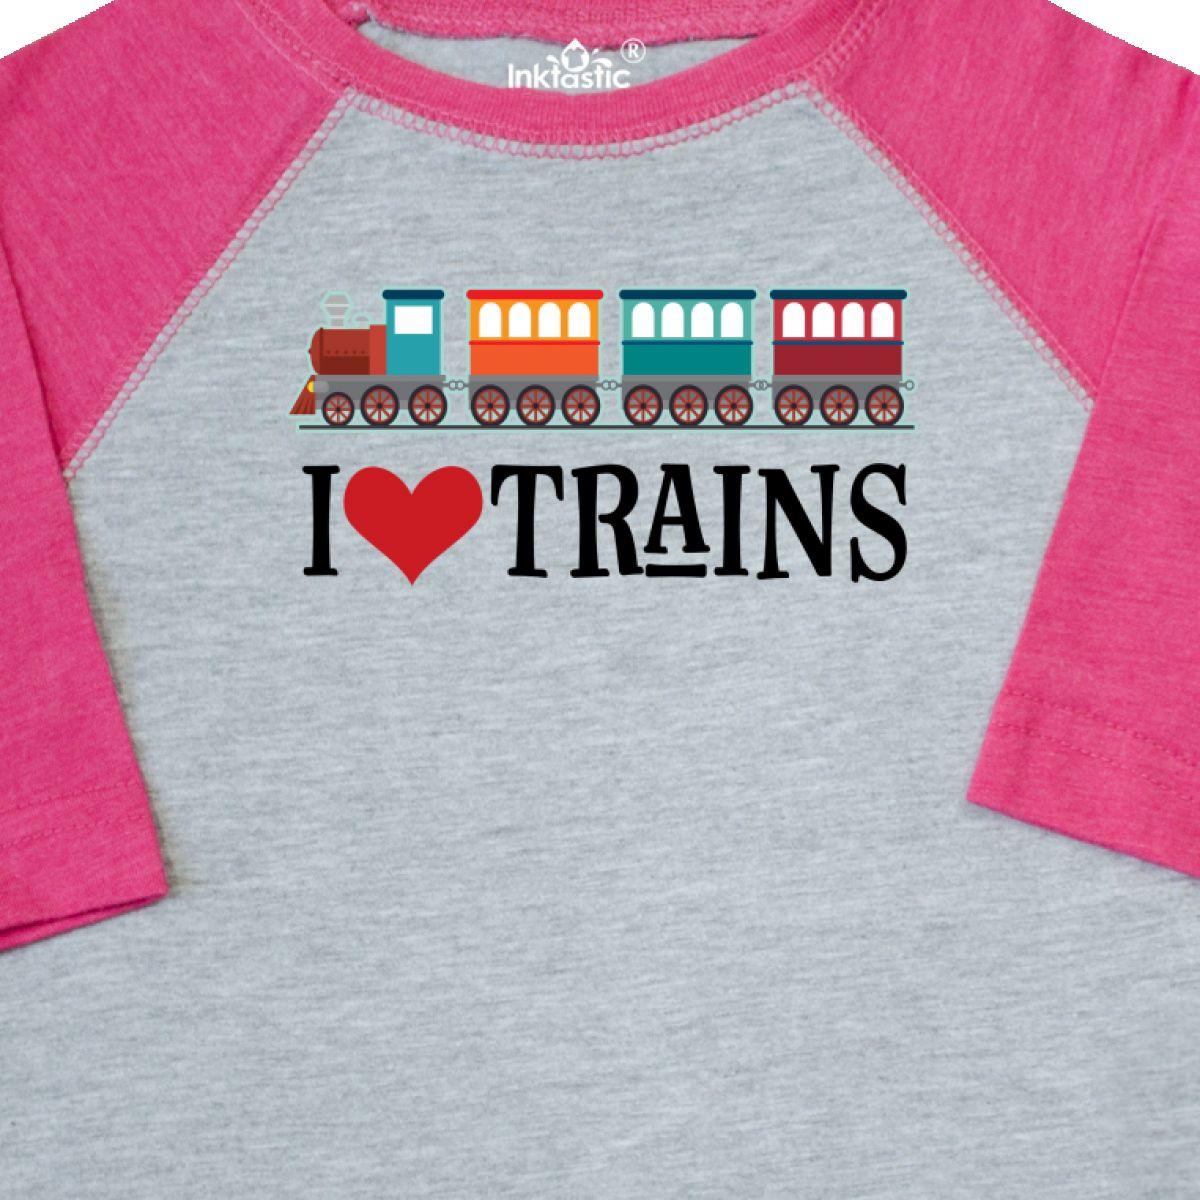 Inktastic-I-Love-Trains-Toddler-T-Shirt-Choo-Childs-Clothing-Apparel-Railfan-Set thumbnail 8